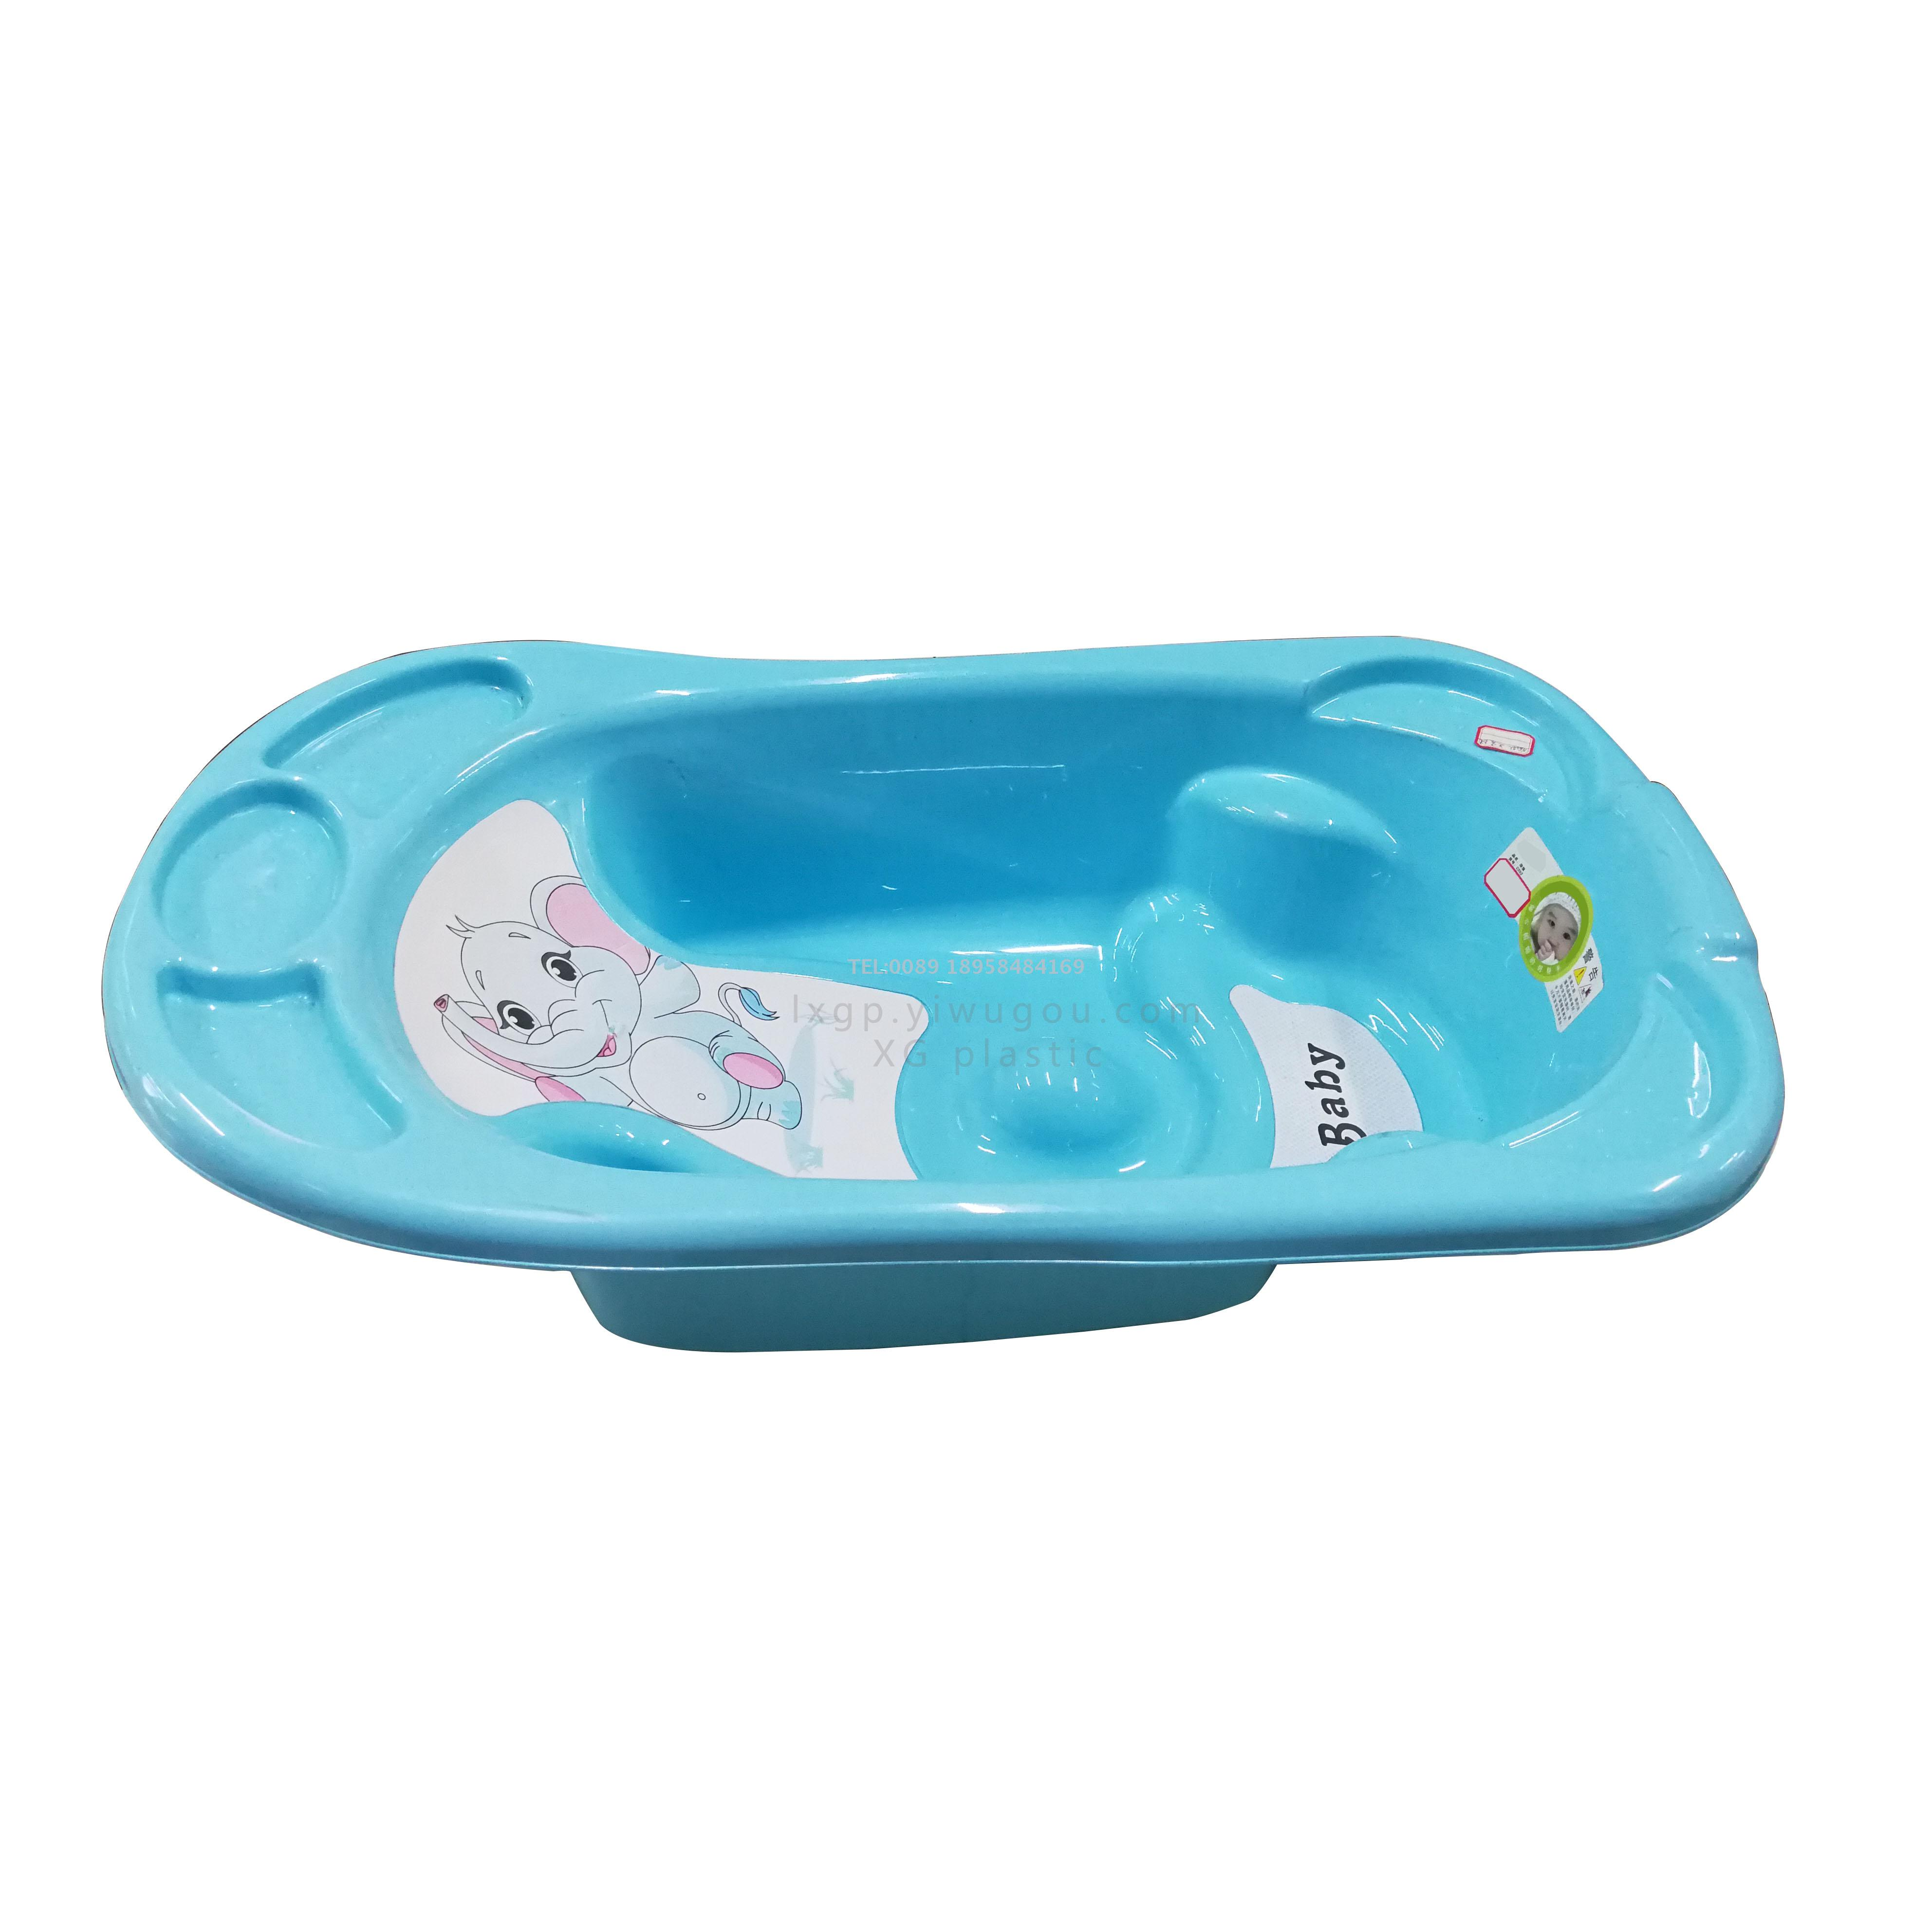 Supply Bathtubs big size pp mutifuction baby bath tub cute children ...